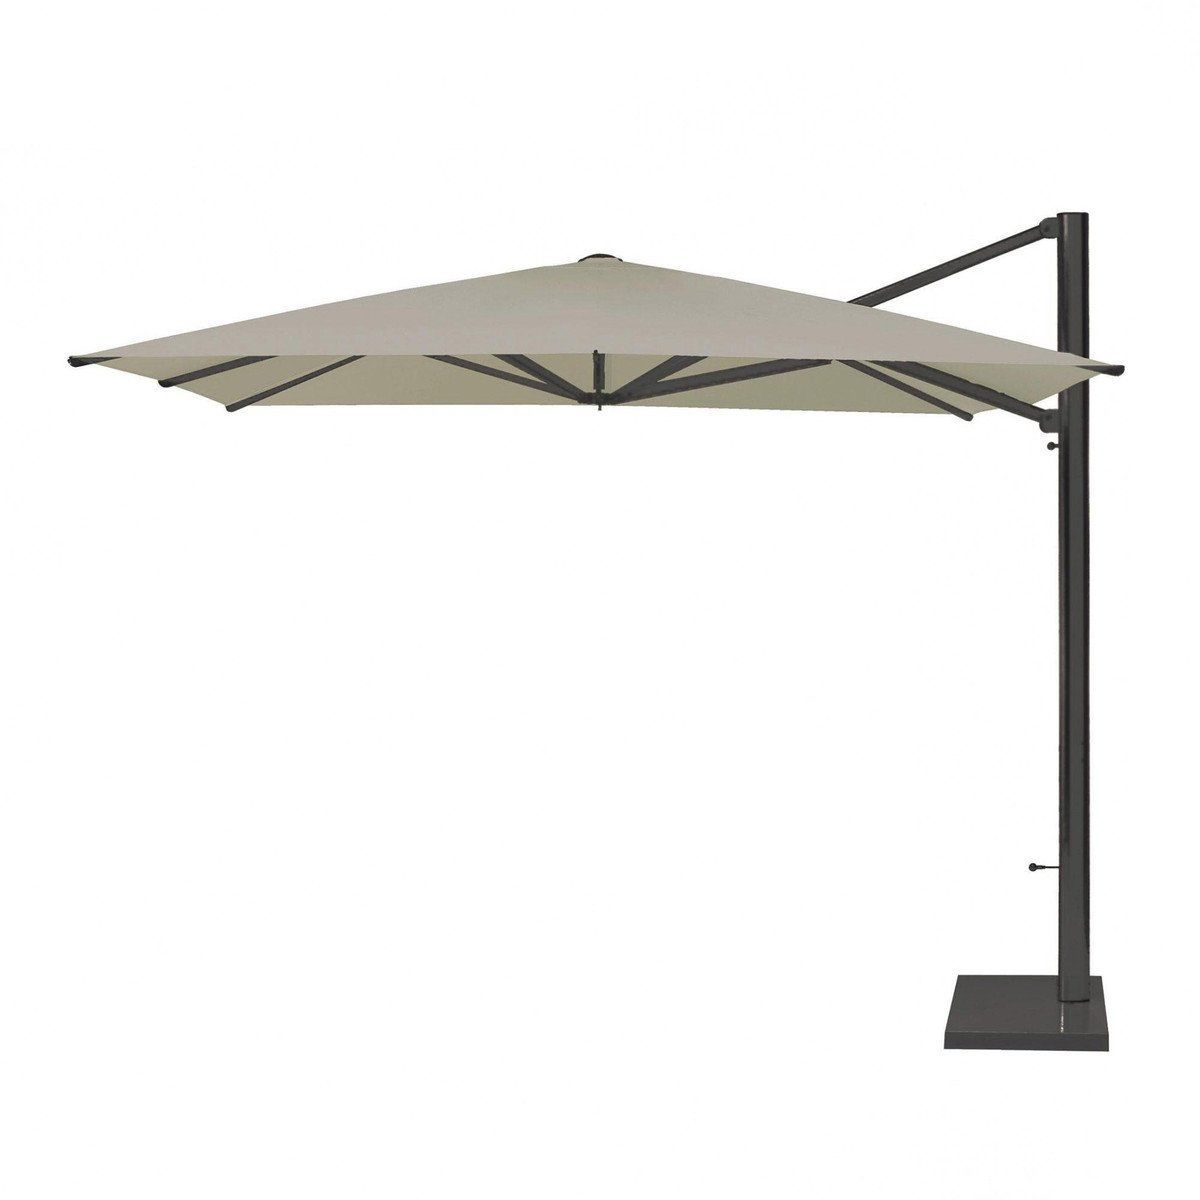 shade parasol m t c t 300x320cm emu. Black Bedroom Furniture Sets. Home Design Ideas